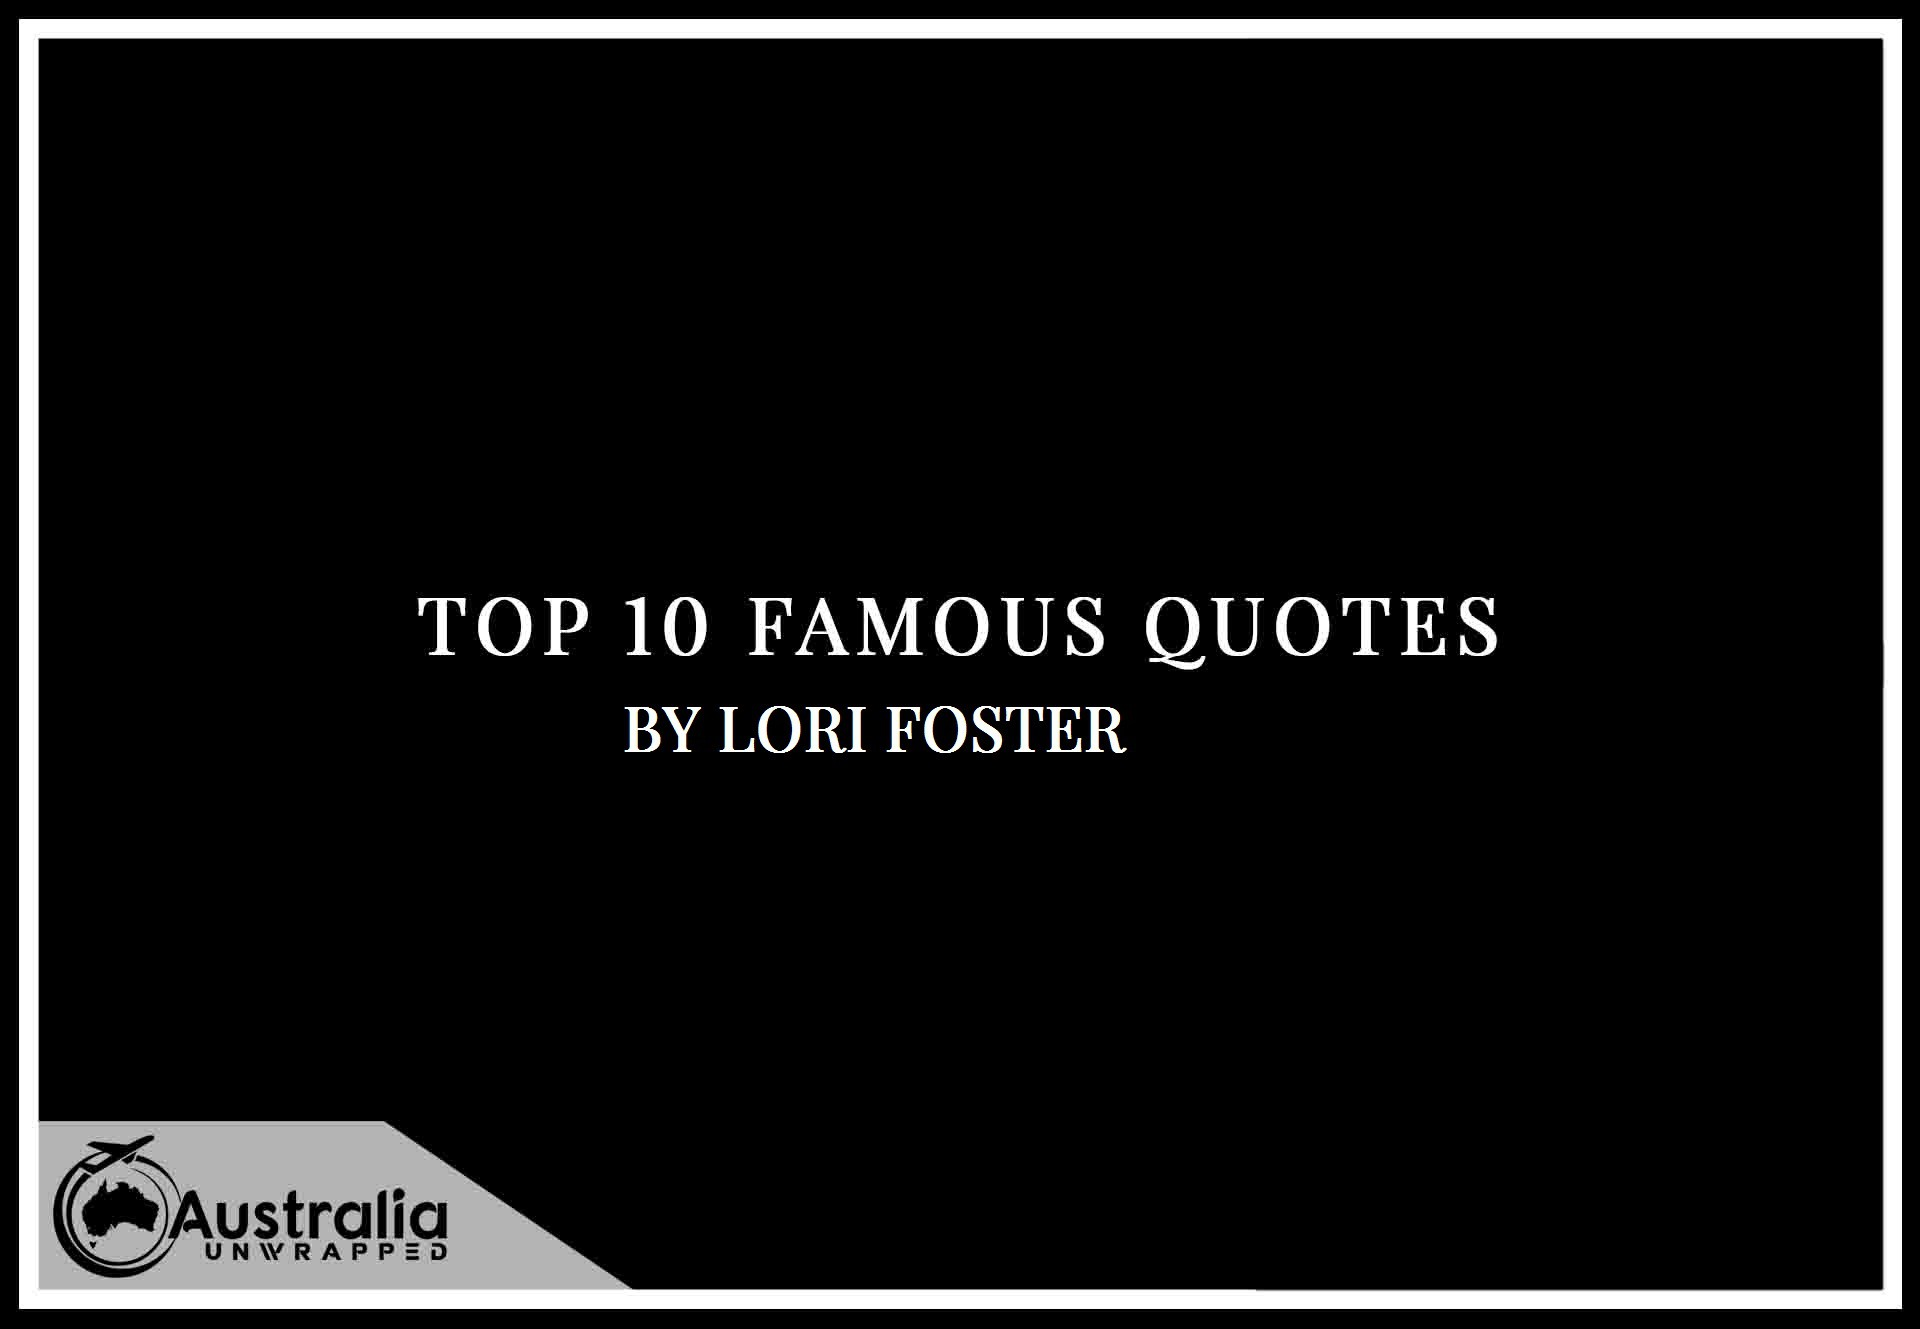 Lori Foster's Top 10 Popular and Famous Quotes